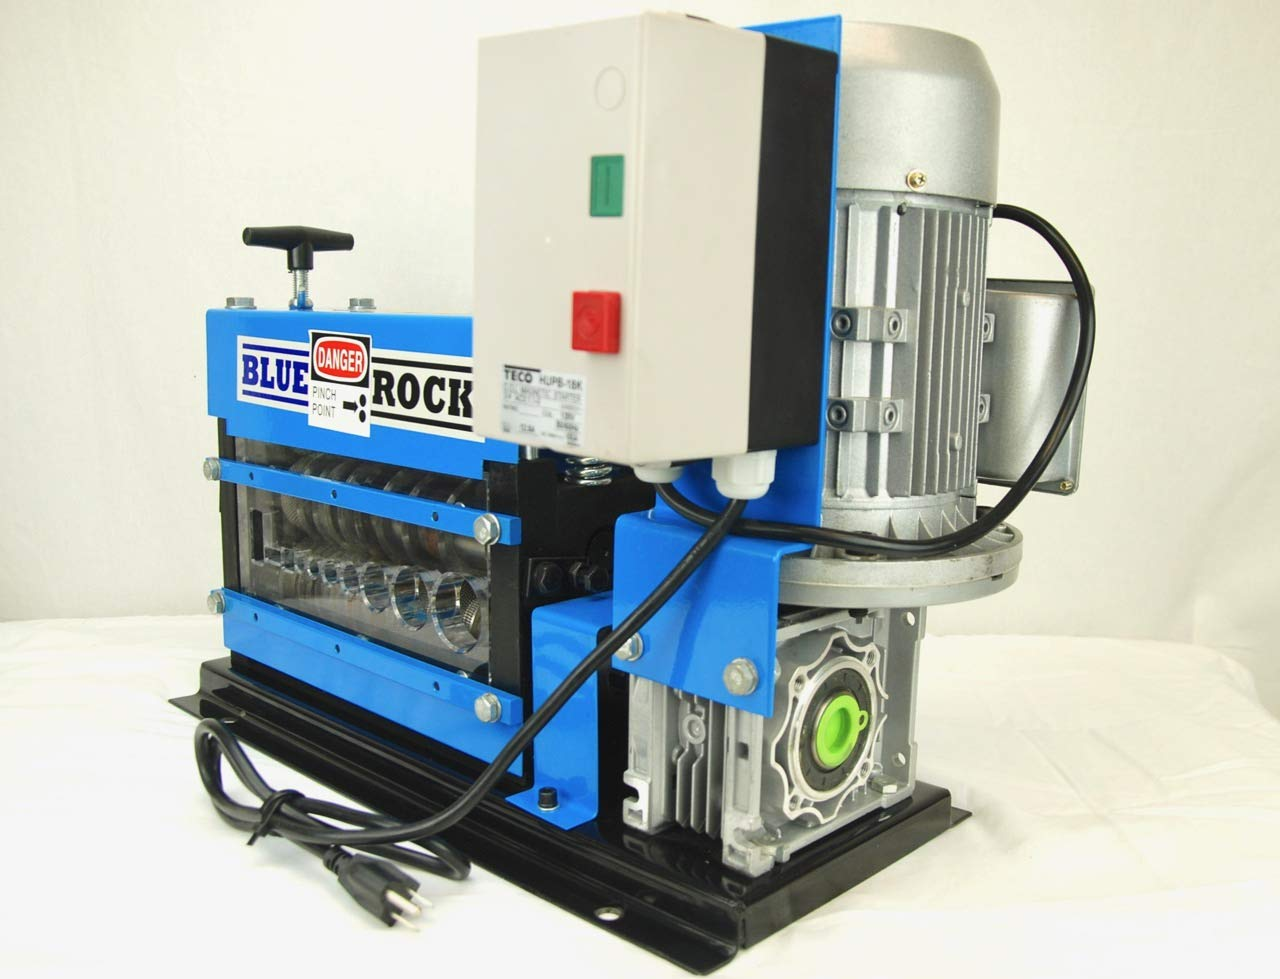 BLUEROCK Tools Model MWS-808PMO Wire Stripping Machine Copper Cable Stripper by BLUEROCK (Image #2)